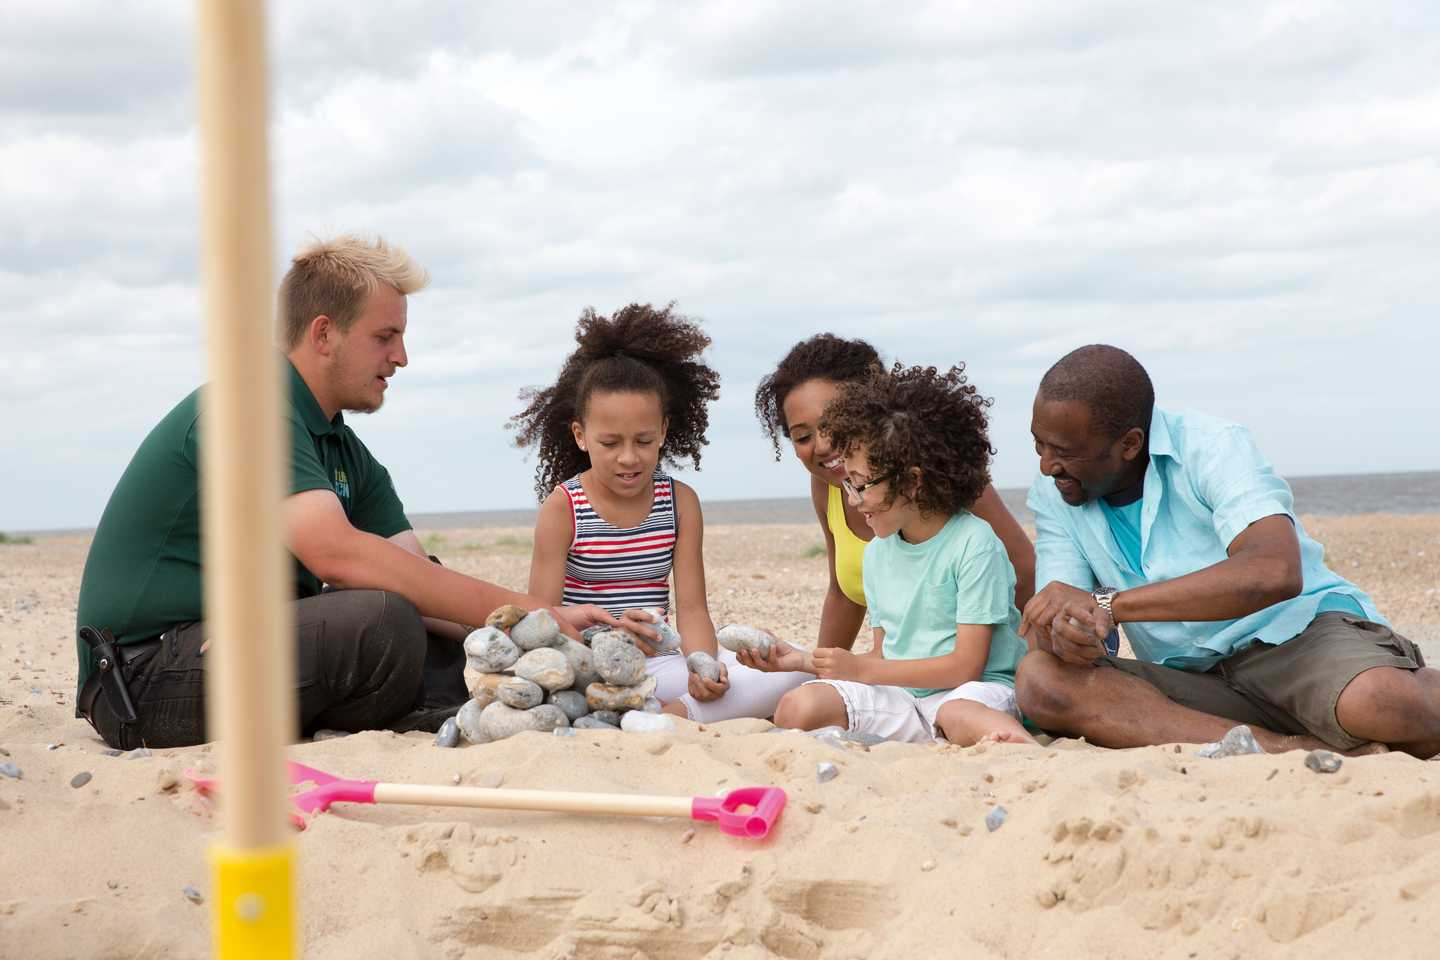 Guests on the beach with a Ranger building a tower with pebbles